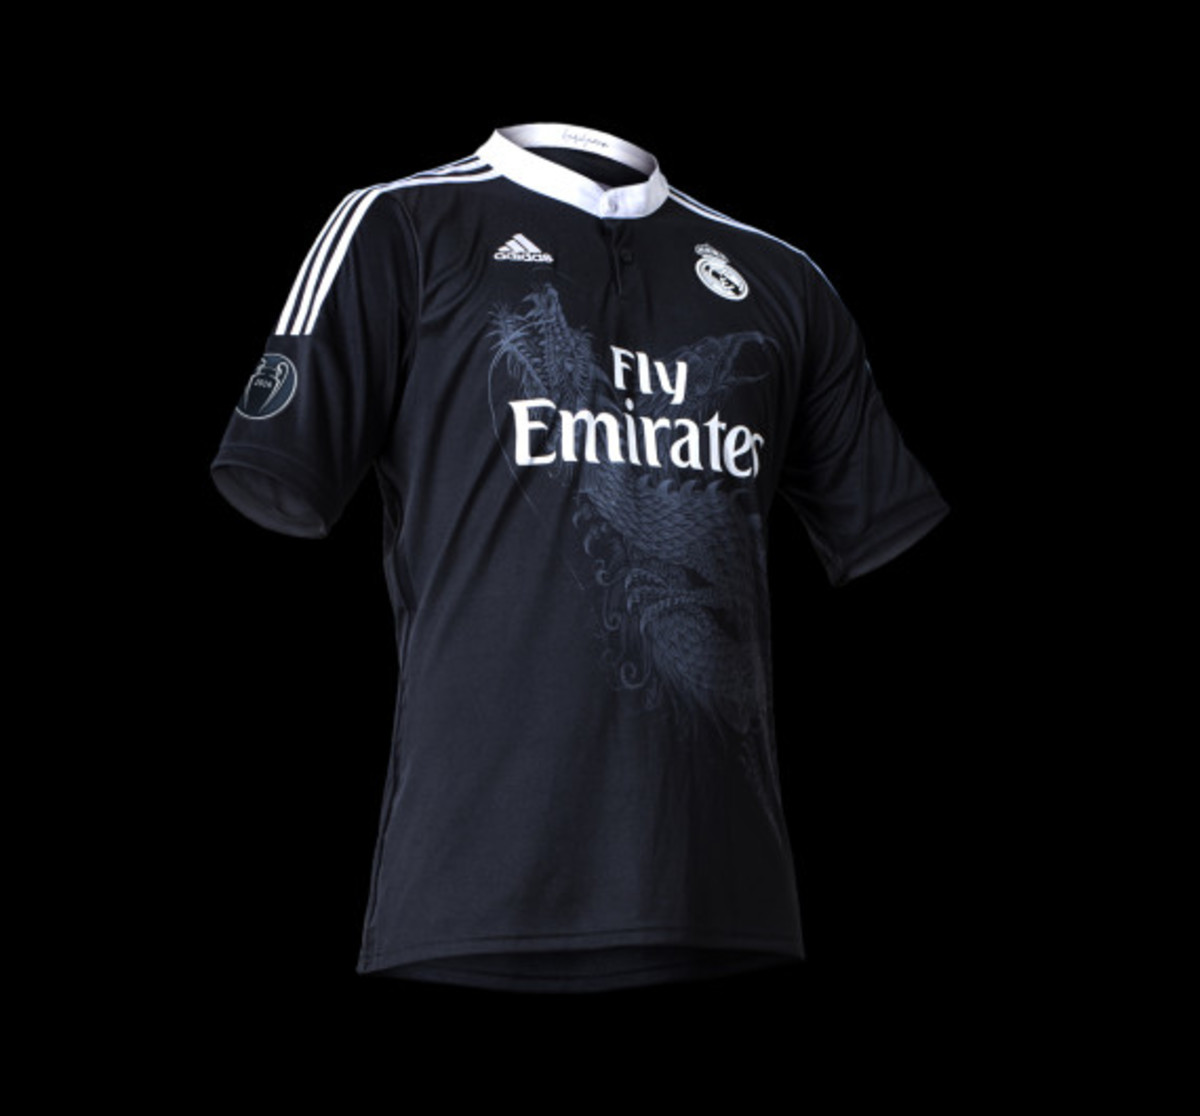 adidas-yamamoto-designed-real-madrid-third-kit-adizero-f50-cleat-02